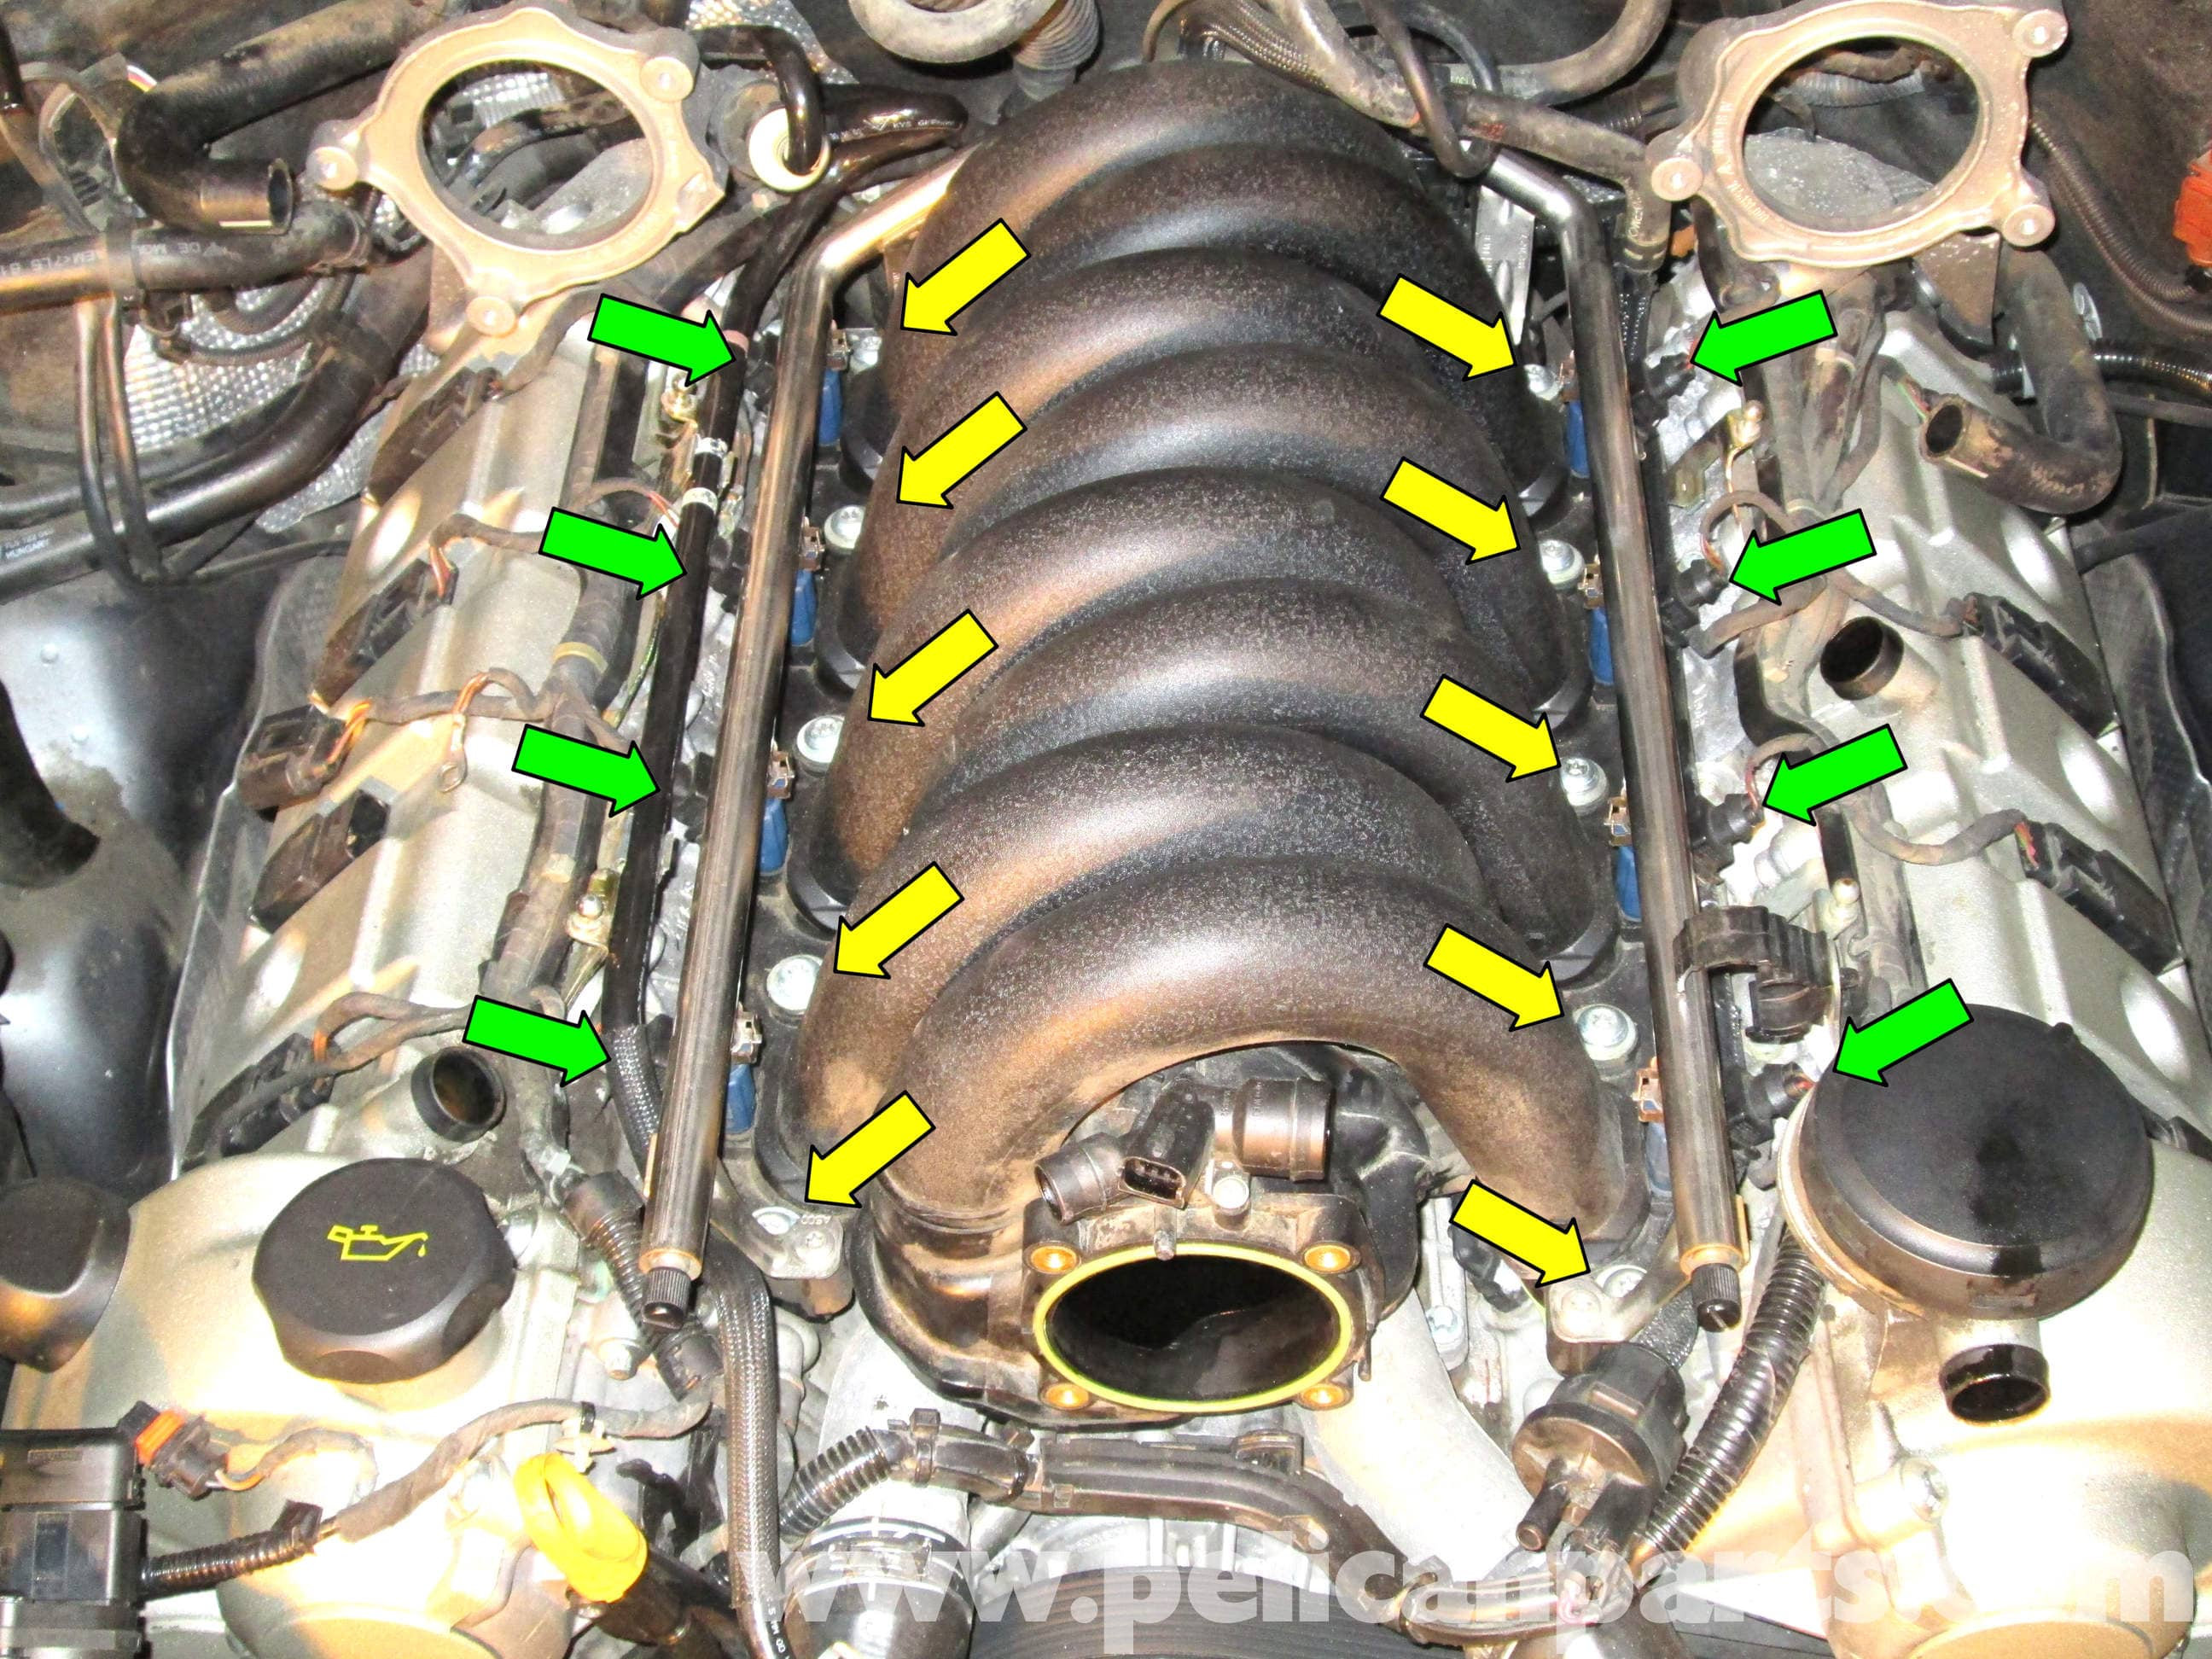 2005 Porsche Cayenne S Engine Diagram Great Installation Of Wiring Honda Civic Charging Intake Manifold Removal 2003 2008 Pelican Parts Rh Pelicanparts Com Ford Mustang Gt